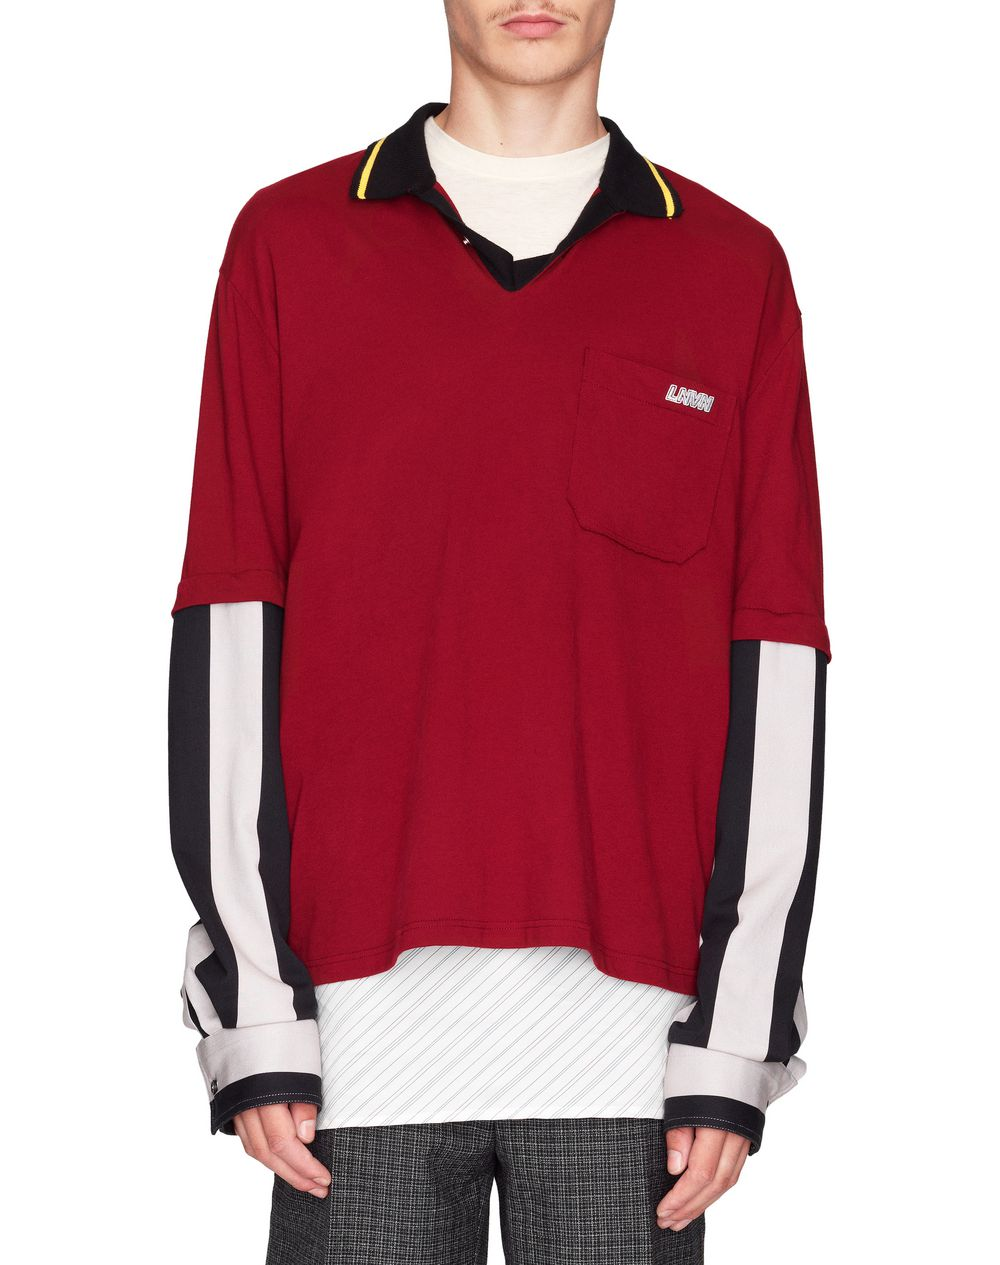 POLO WITH REMOVABLE SHIRT SLEEVES     - Lanvin